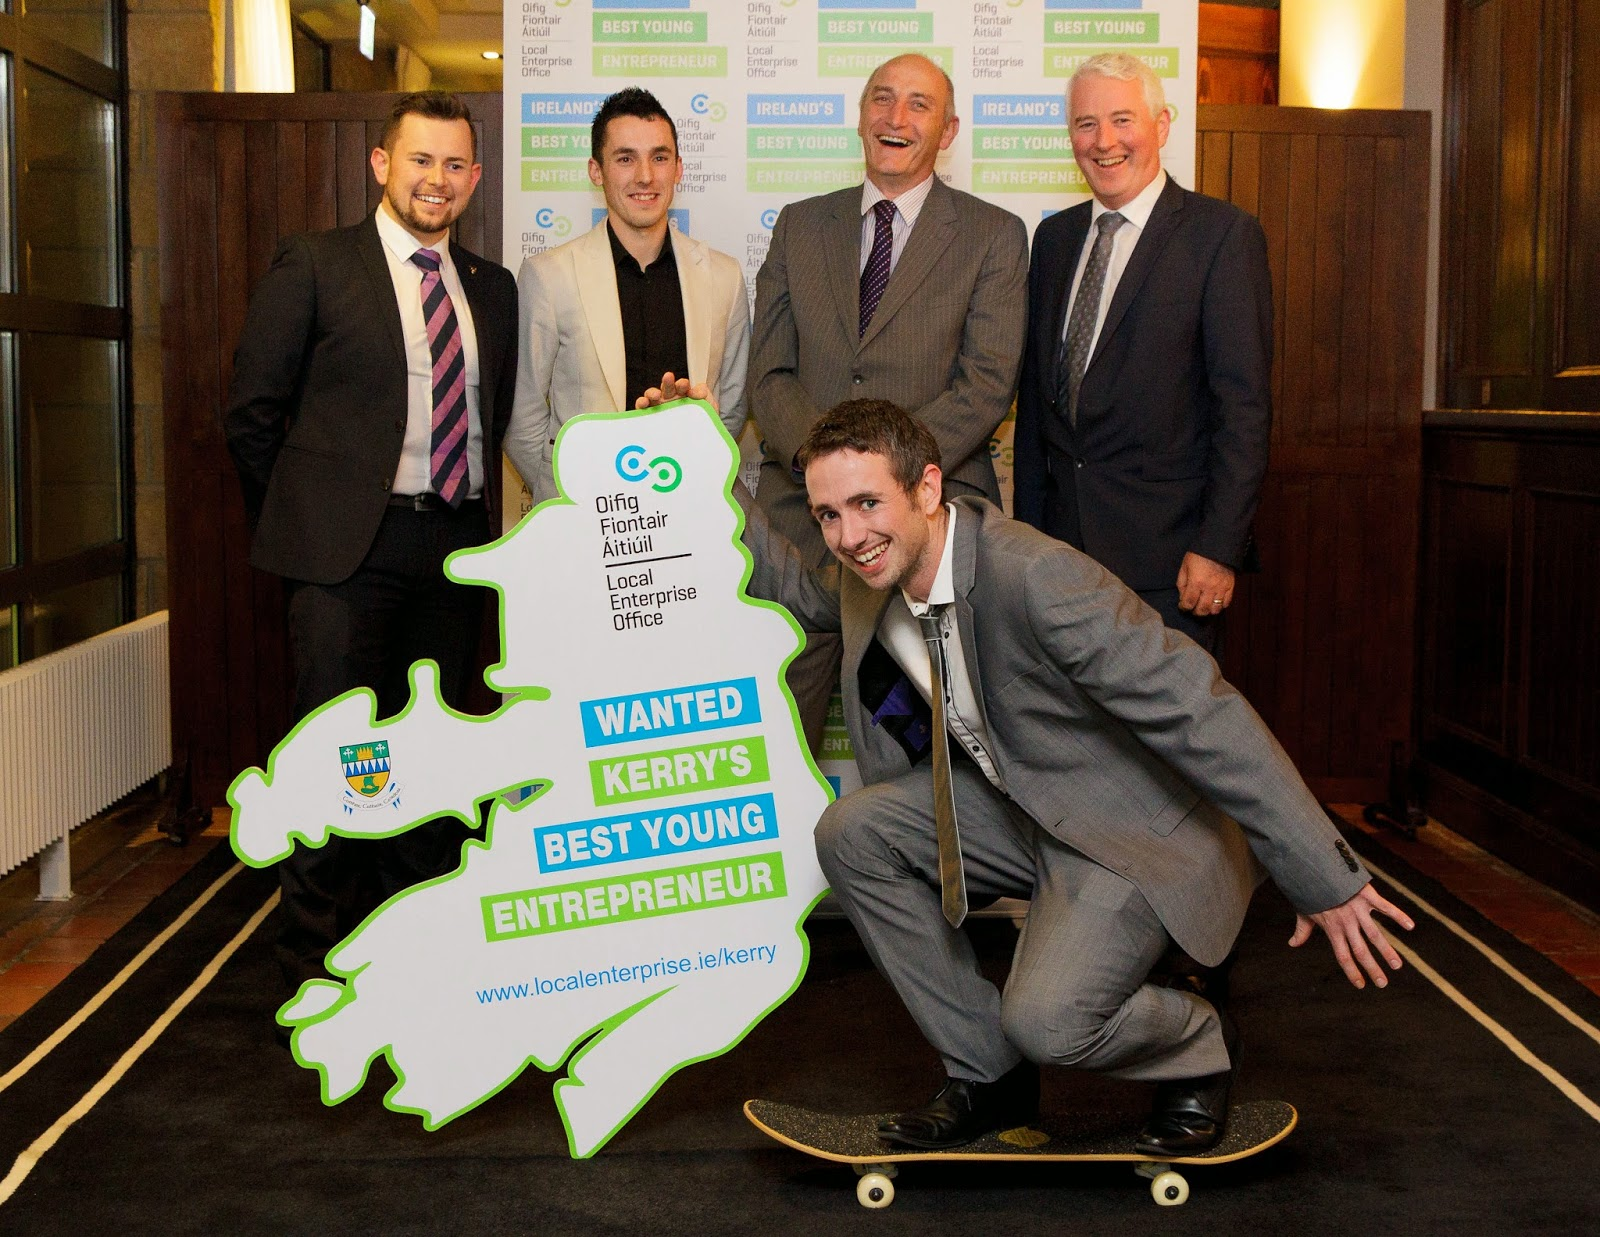 Kerry businesses compete at 'Best Young Entrepreneur' Regional Final